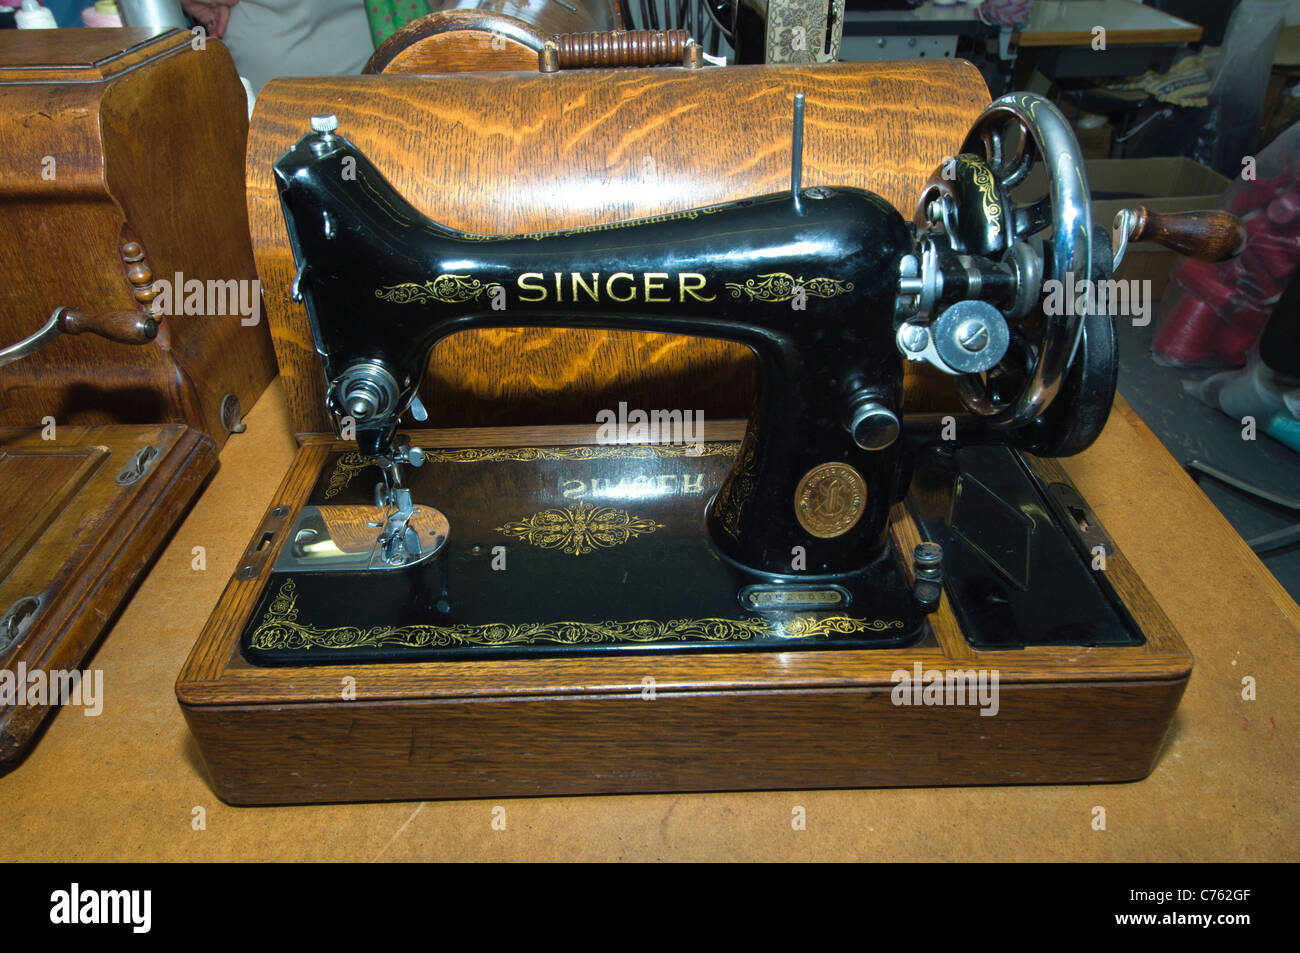 Vintage Singer Sewing Machine High Resolution Stock Photography